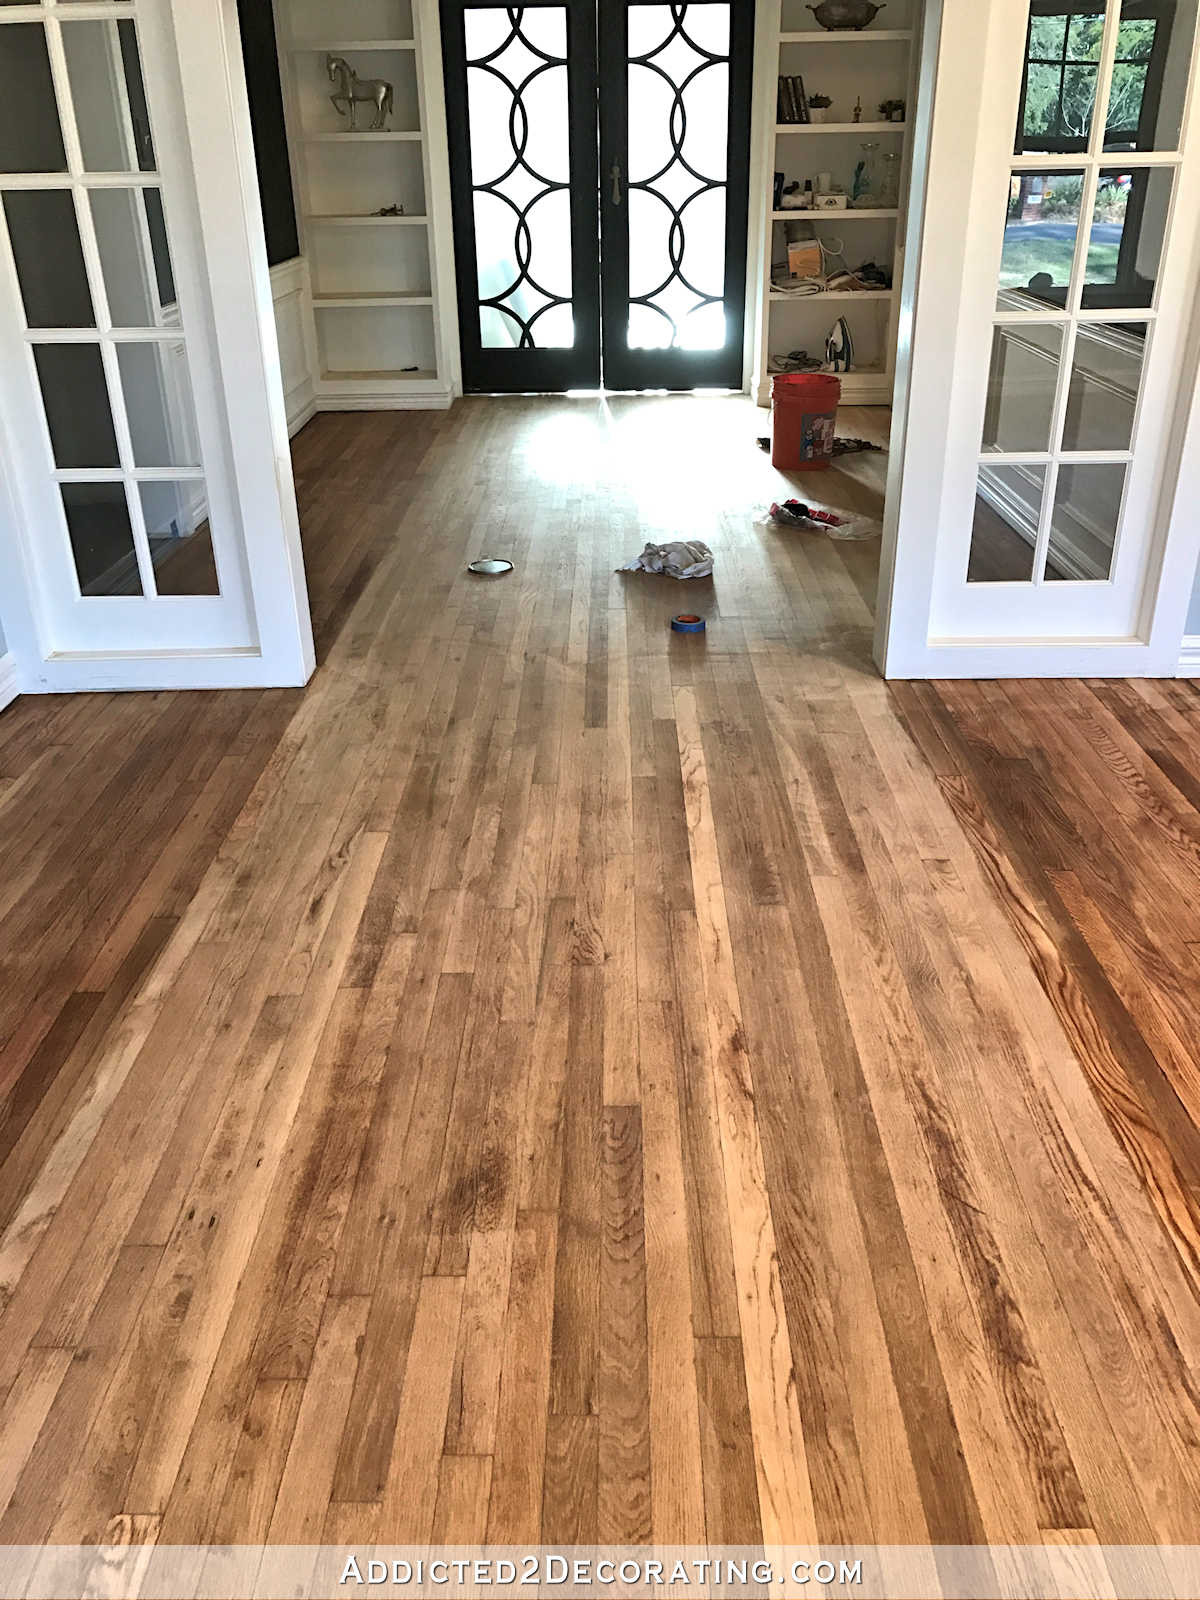 walnut oak hardwood flooring of adventures in staining my red oak hardwood floors products process within staining red oak hardwood floors 5 music room wood conditioner